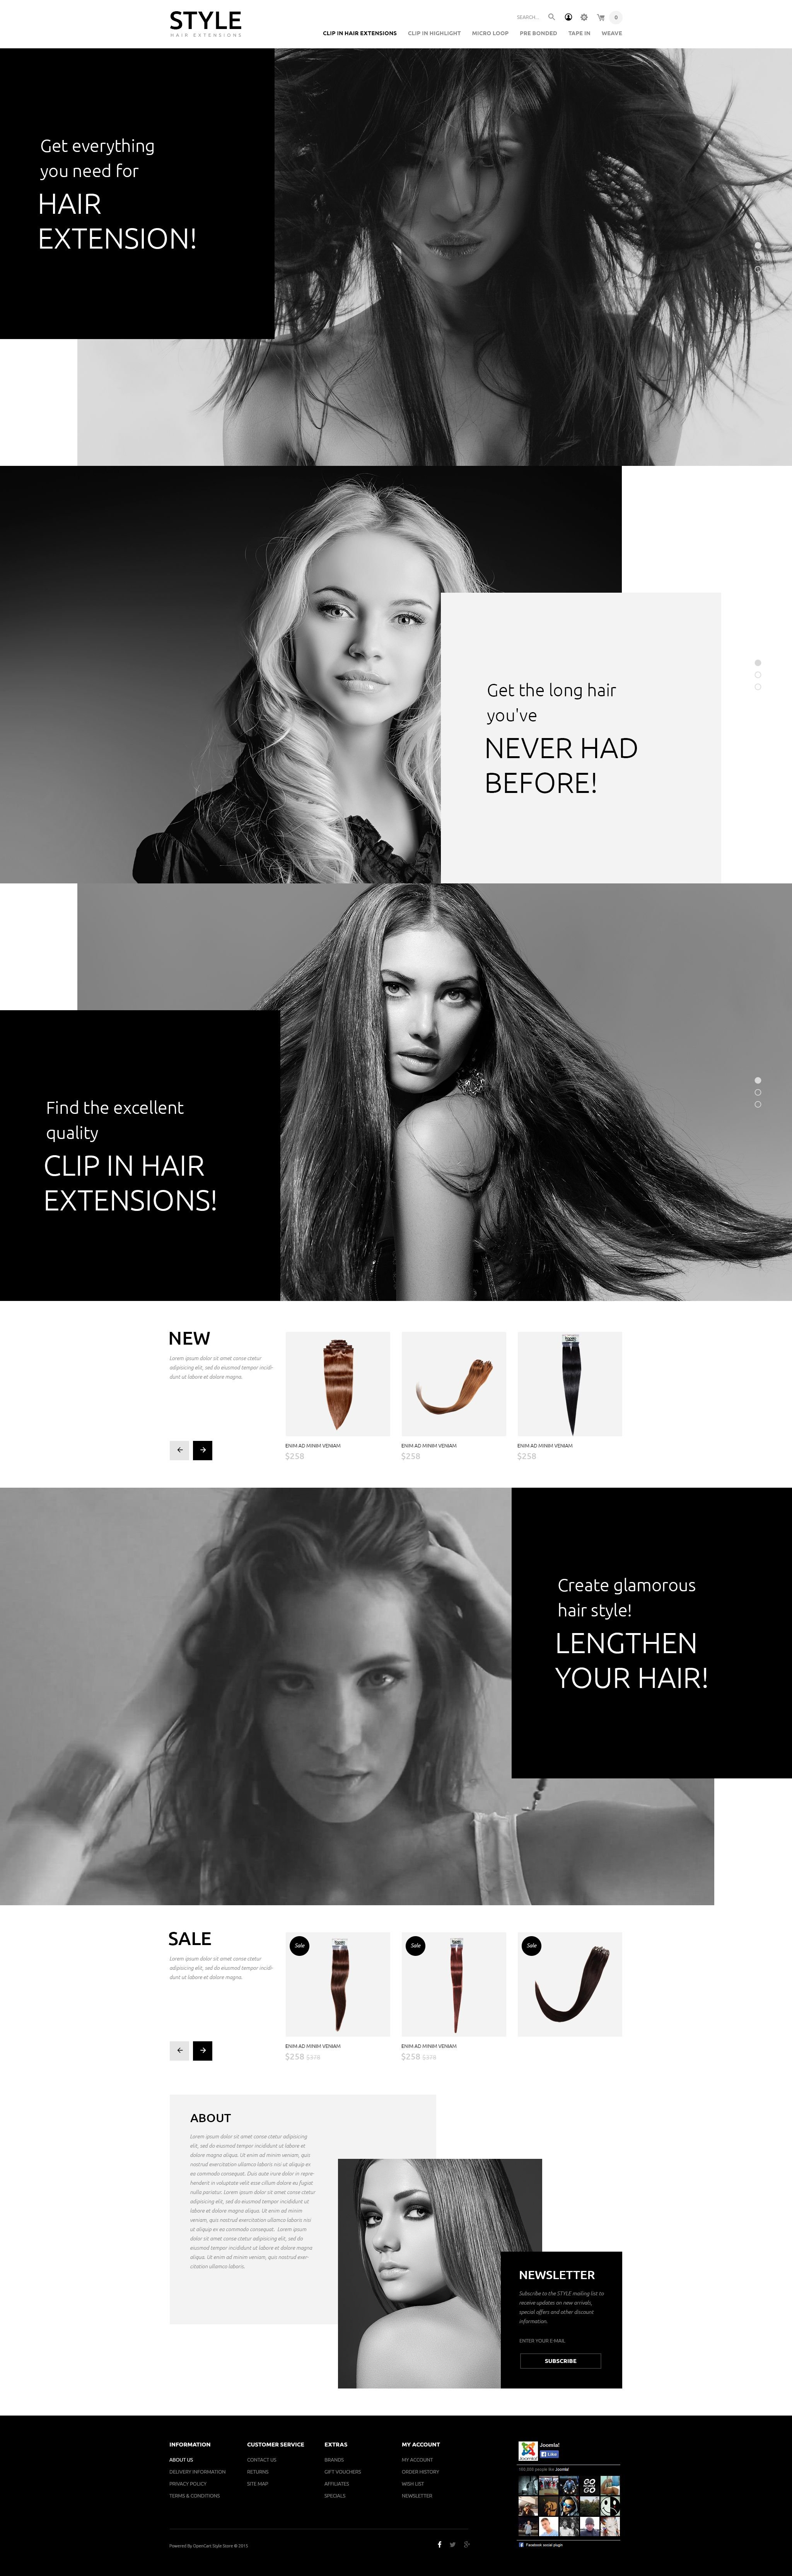 Hair and Beauty Salon Template OpenCart №54746